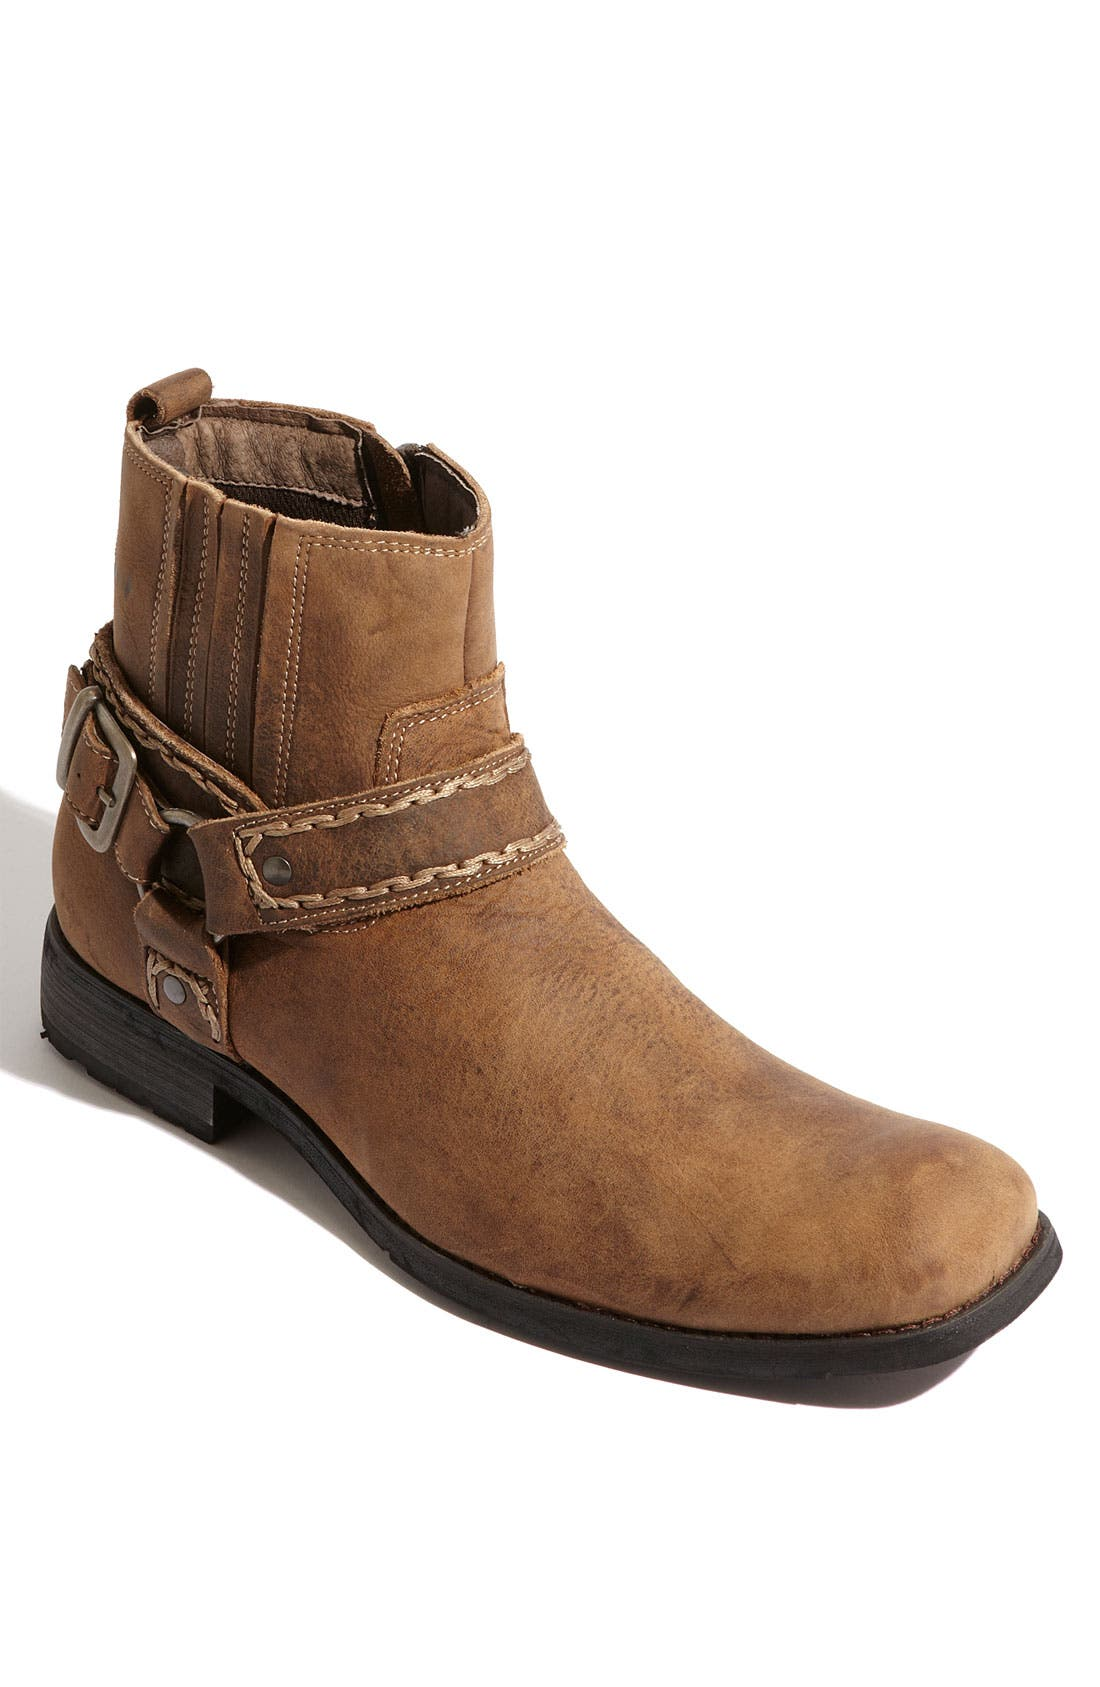 Alternate Image 1 Selected - Bed Stu 'Innovator' Boot (Online Only) (Men)